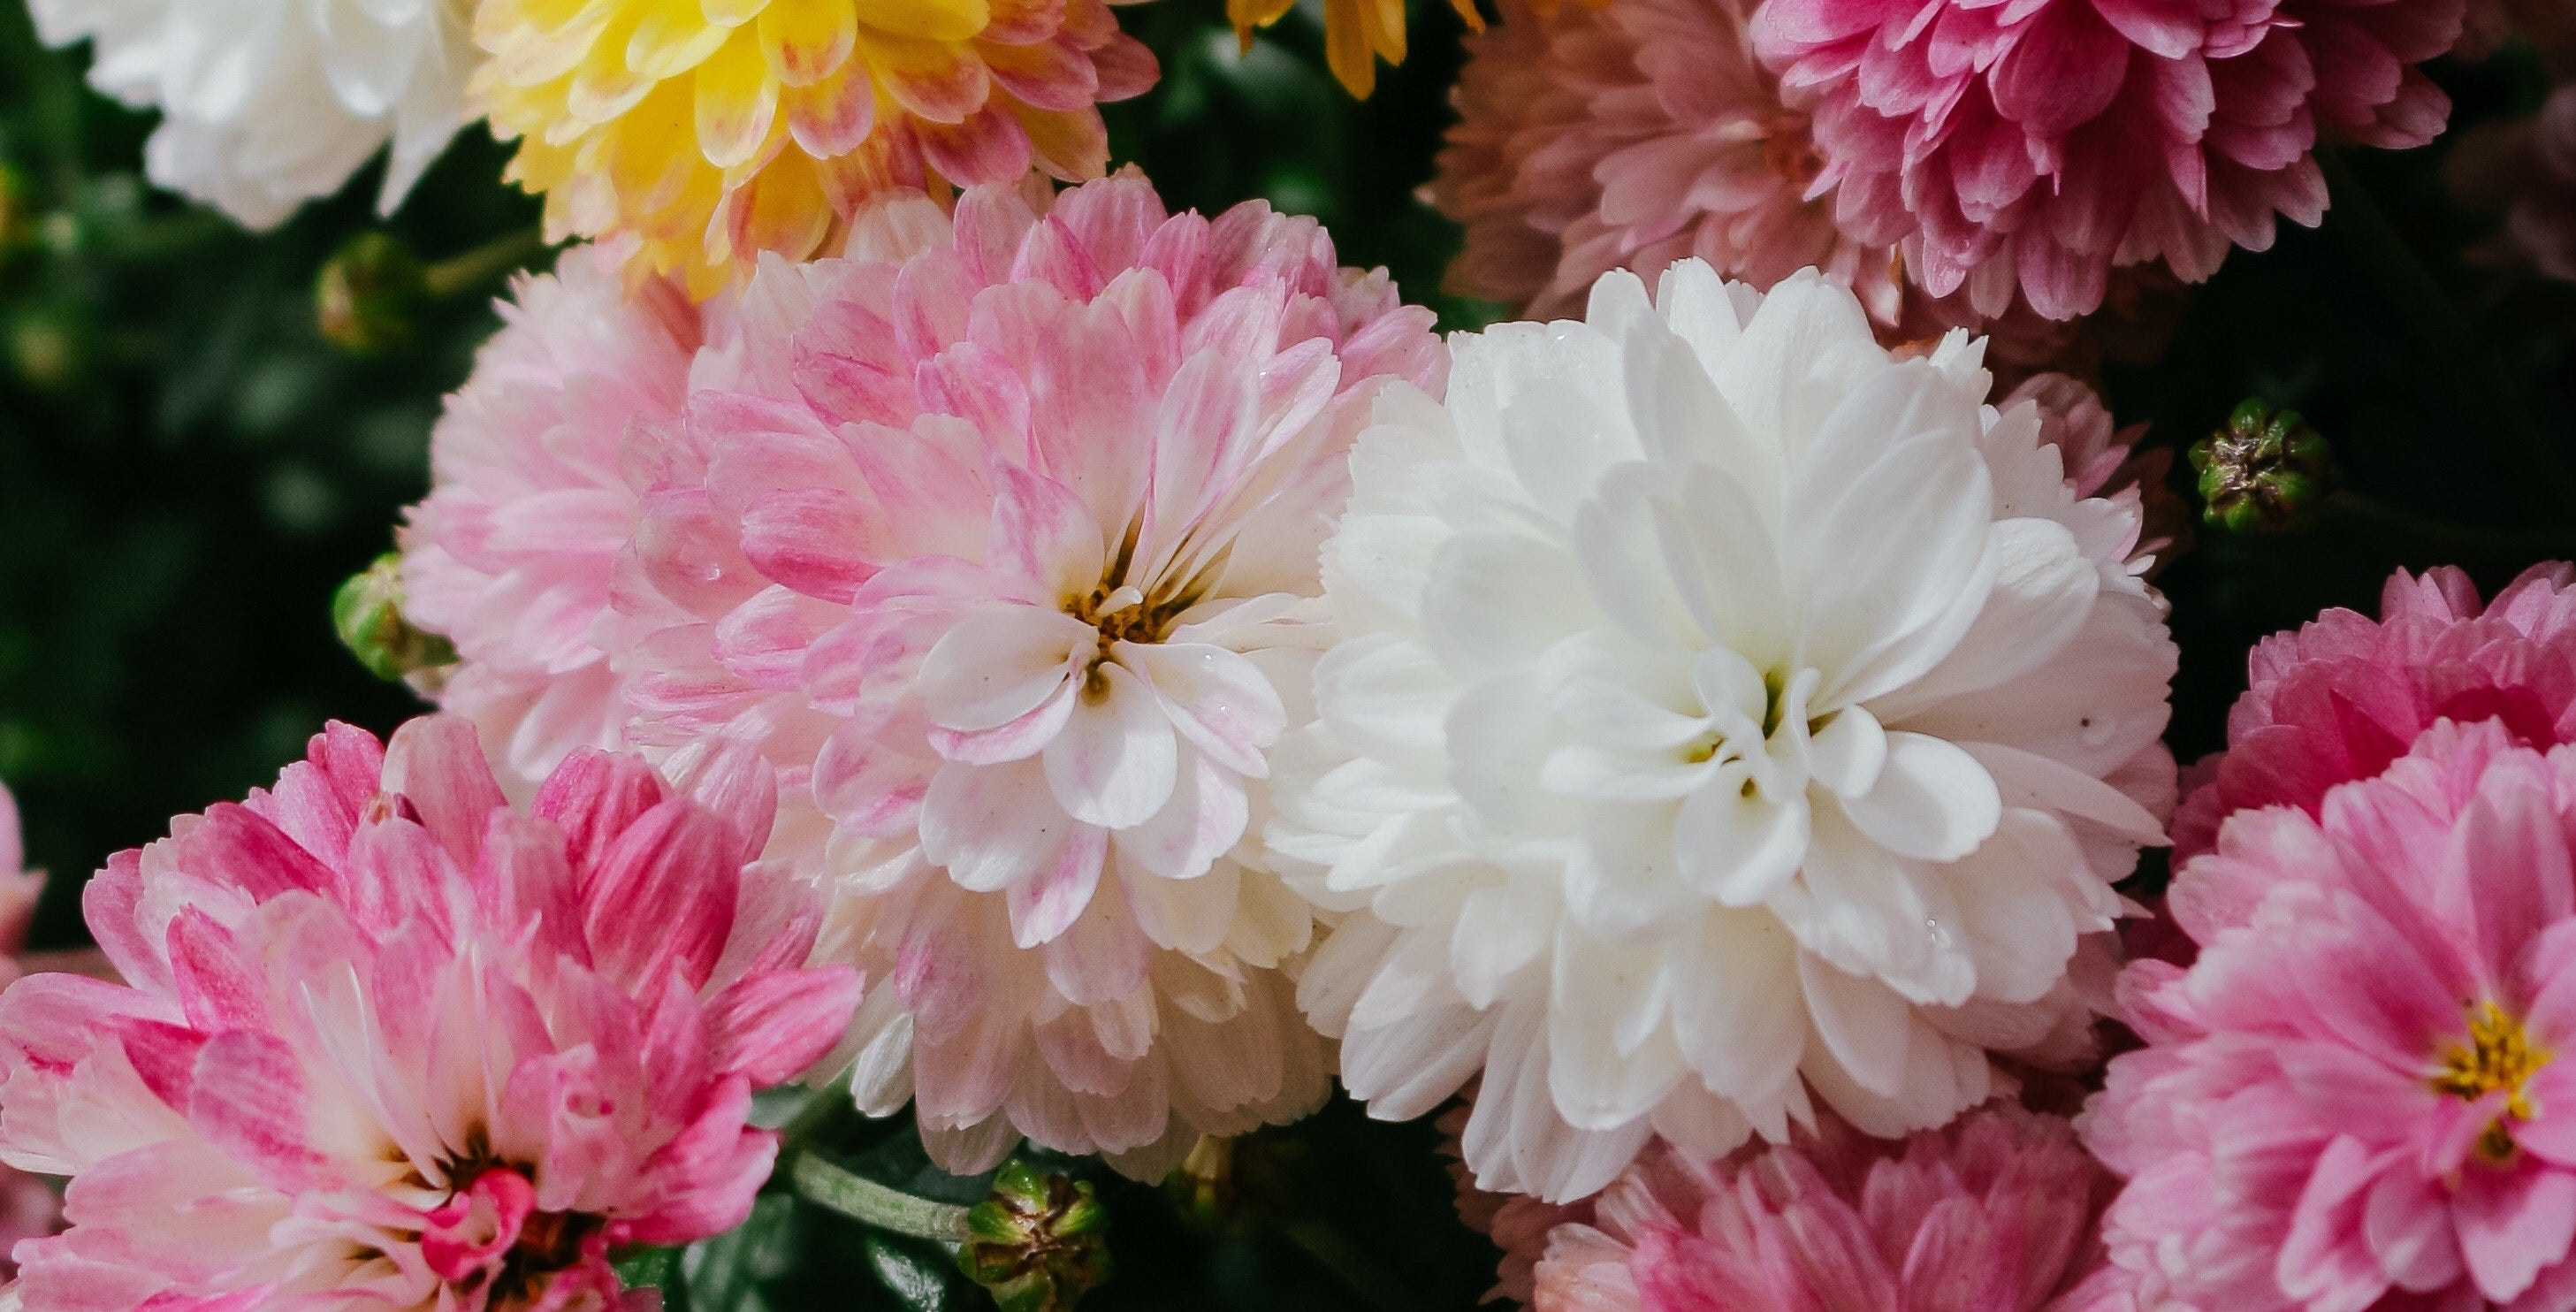 Mothers' Day carnations